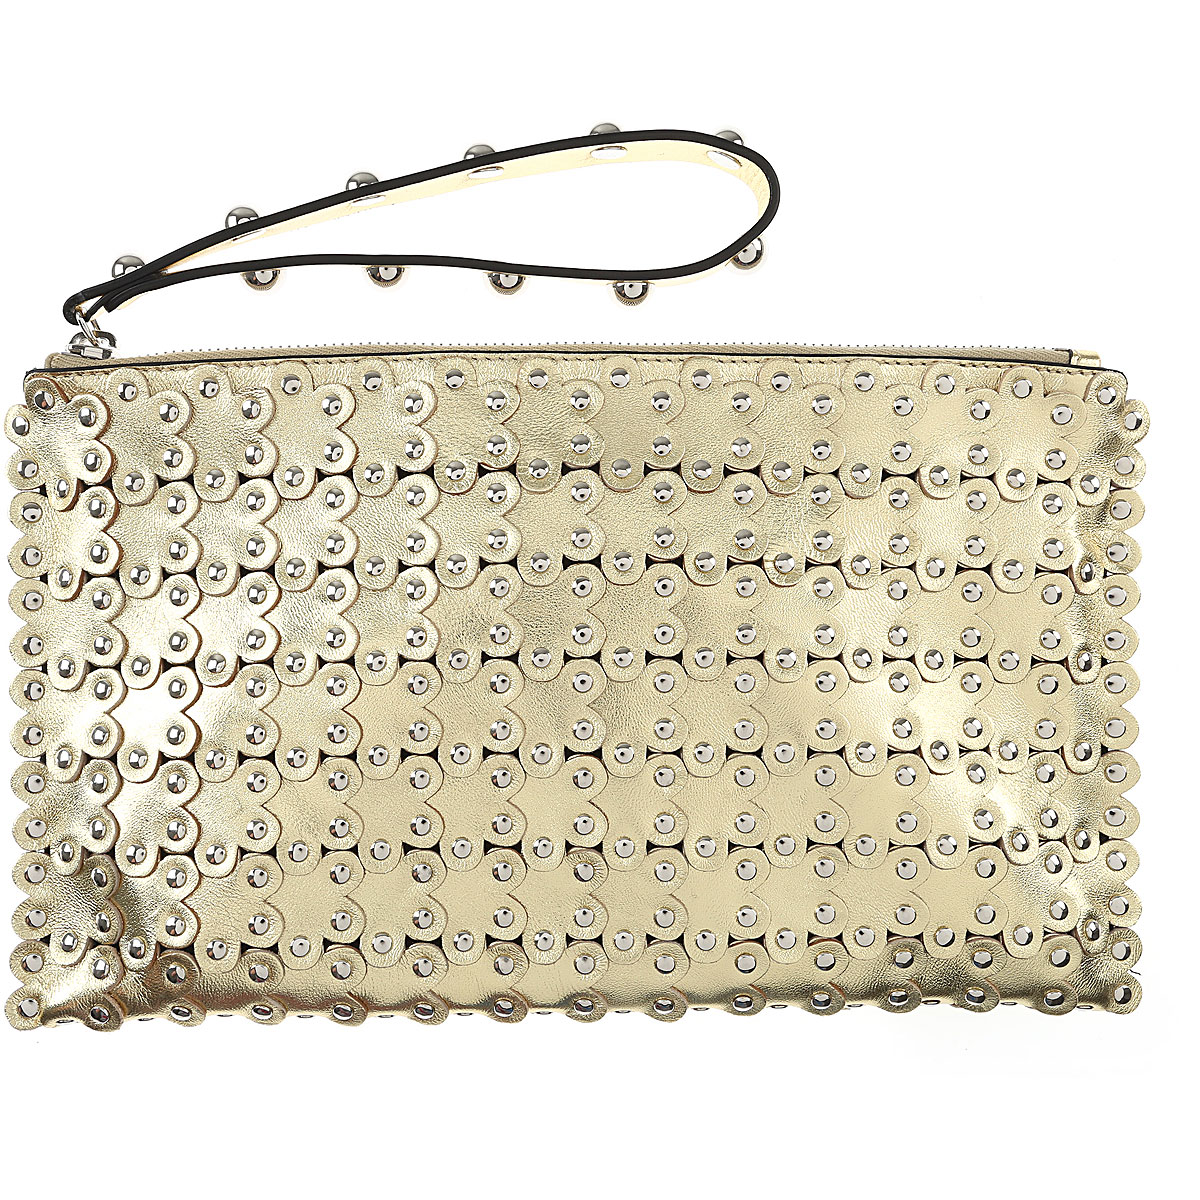 Valentino Women\'s Pouch On Sale, Gold, Leather, 2017 USA-458685